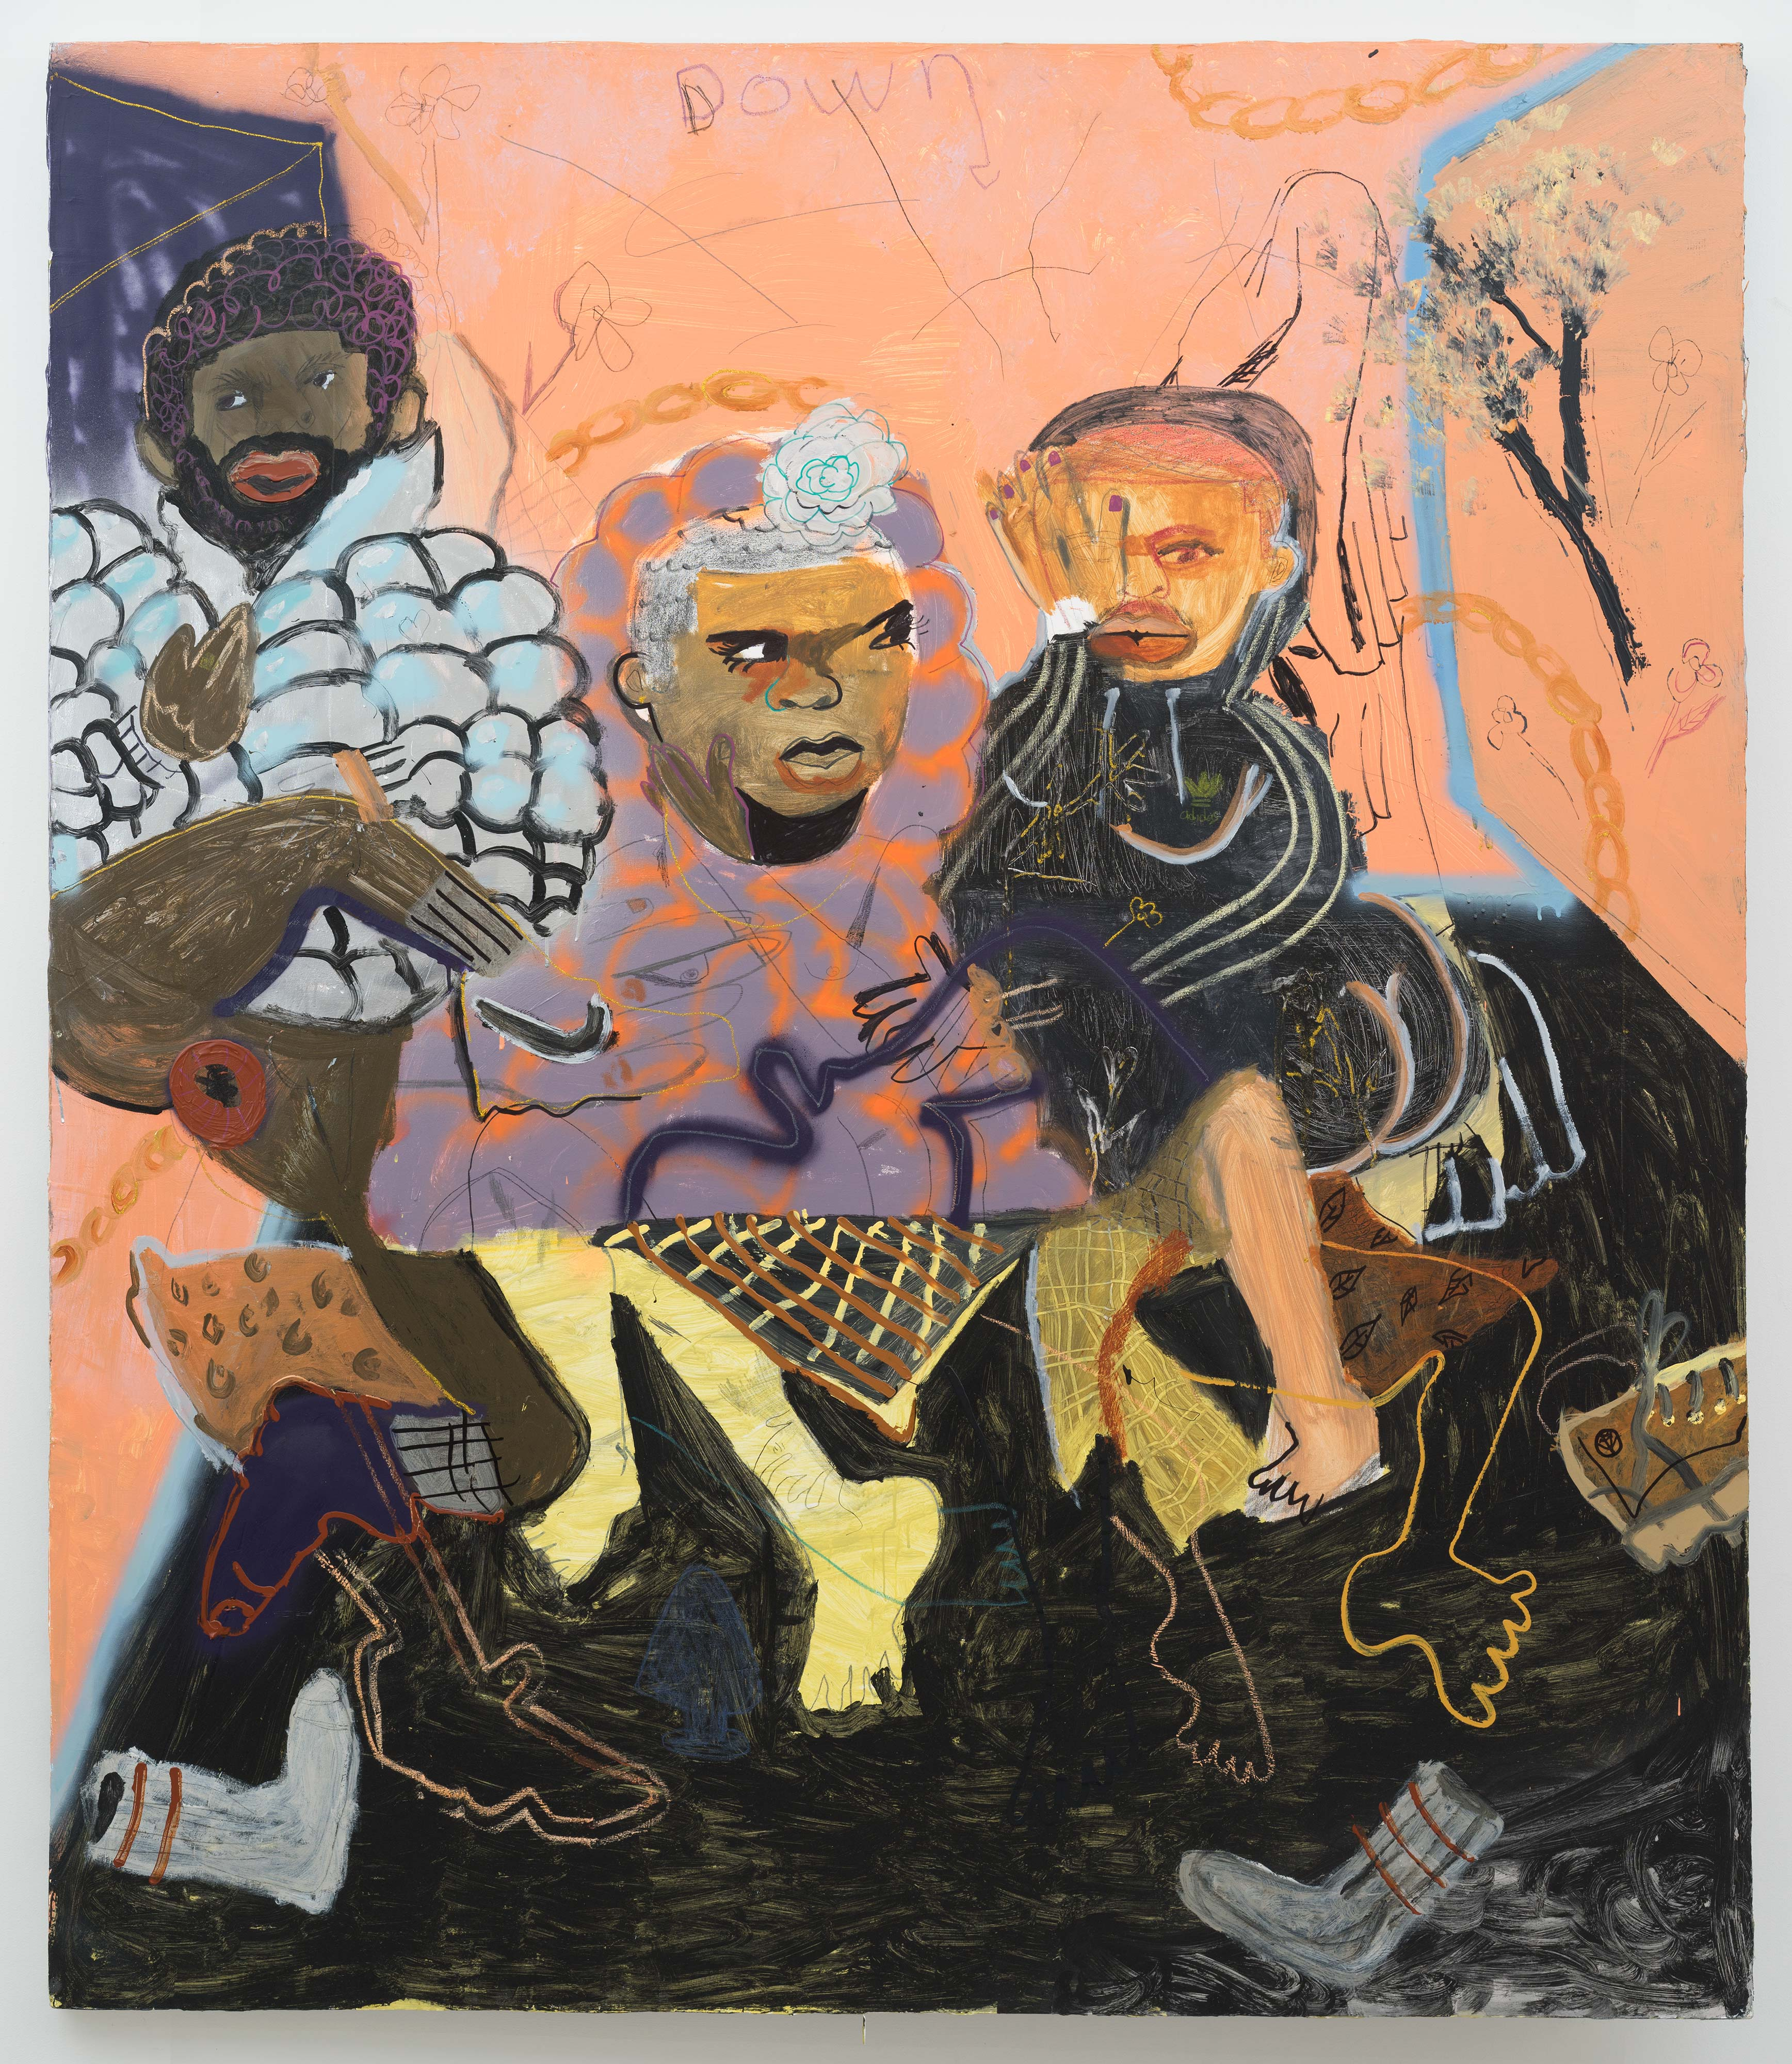 Jonathan Lyndon Chase<br>Puffy Jacket<br>2016<br>Acrylic, Glitter, Spray paint, marker, graphite on canvas<br>84 x 72 in